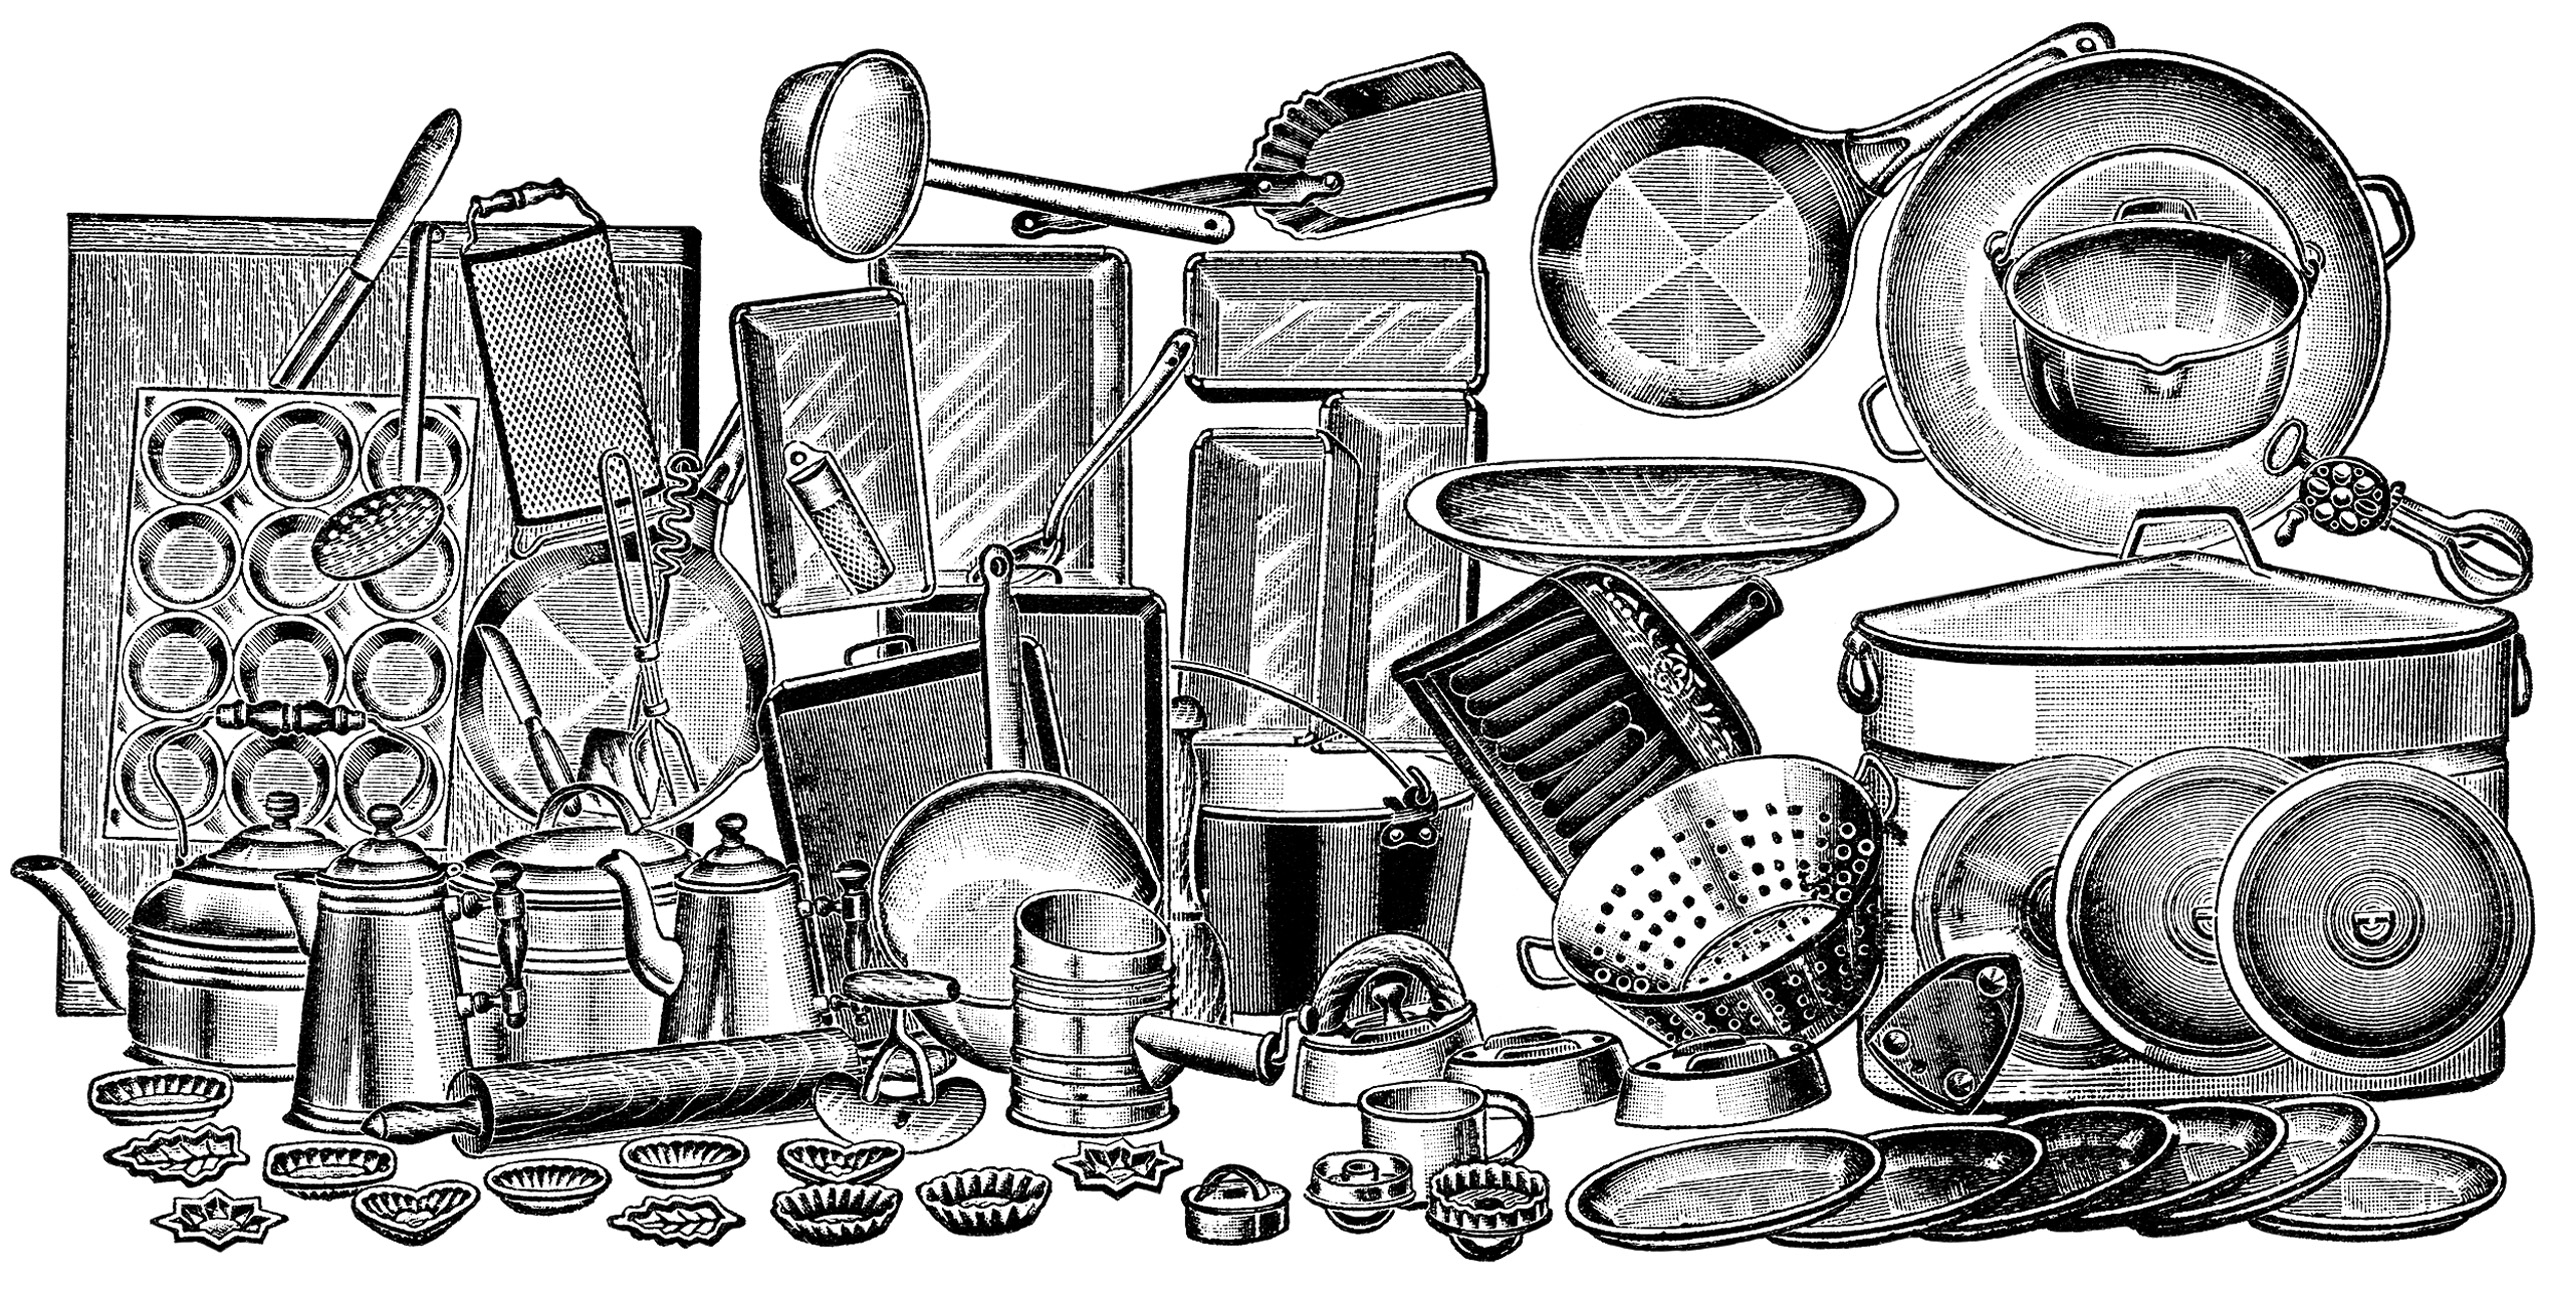 Vintage cooking clipart black and white graphic royalty free download Free Vintage Kitchen Cliparts, Download Free Clip Art, Free ... graphic royalty free download